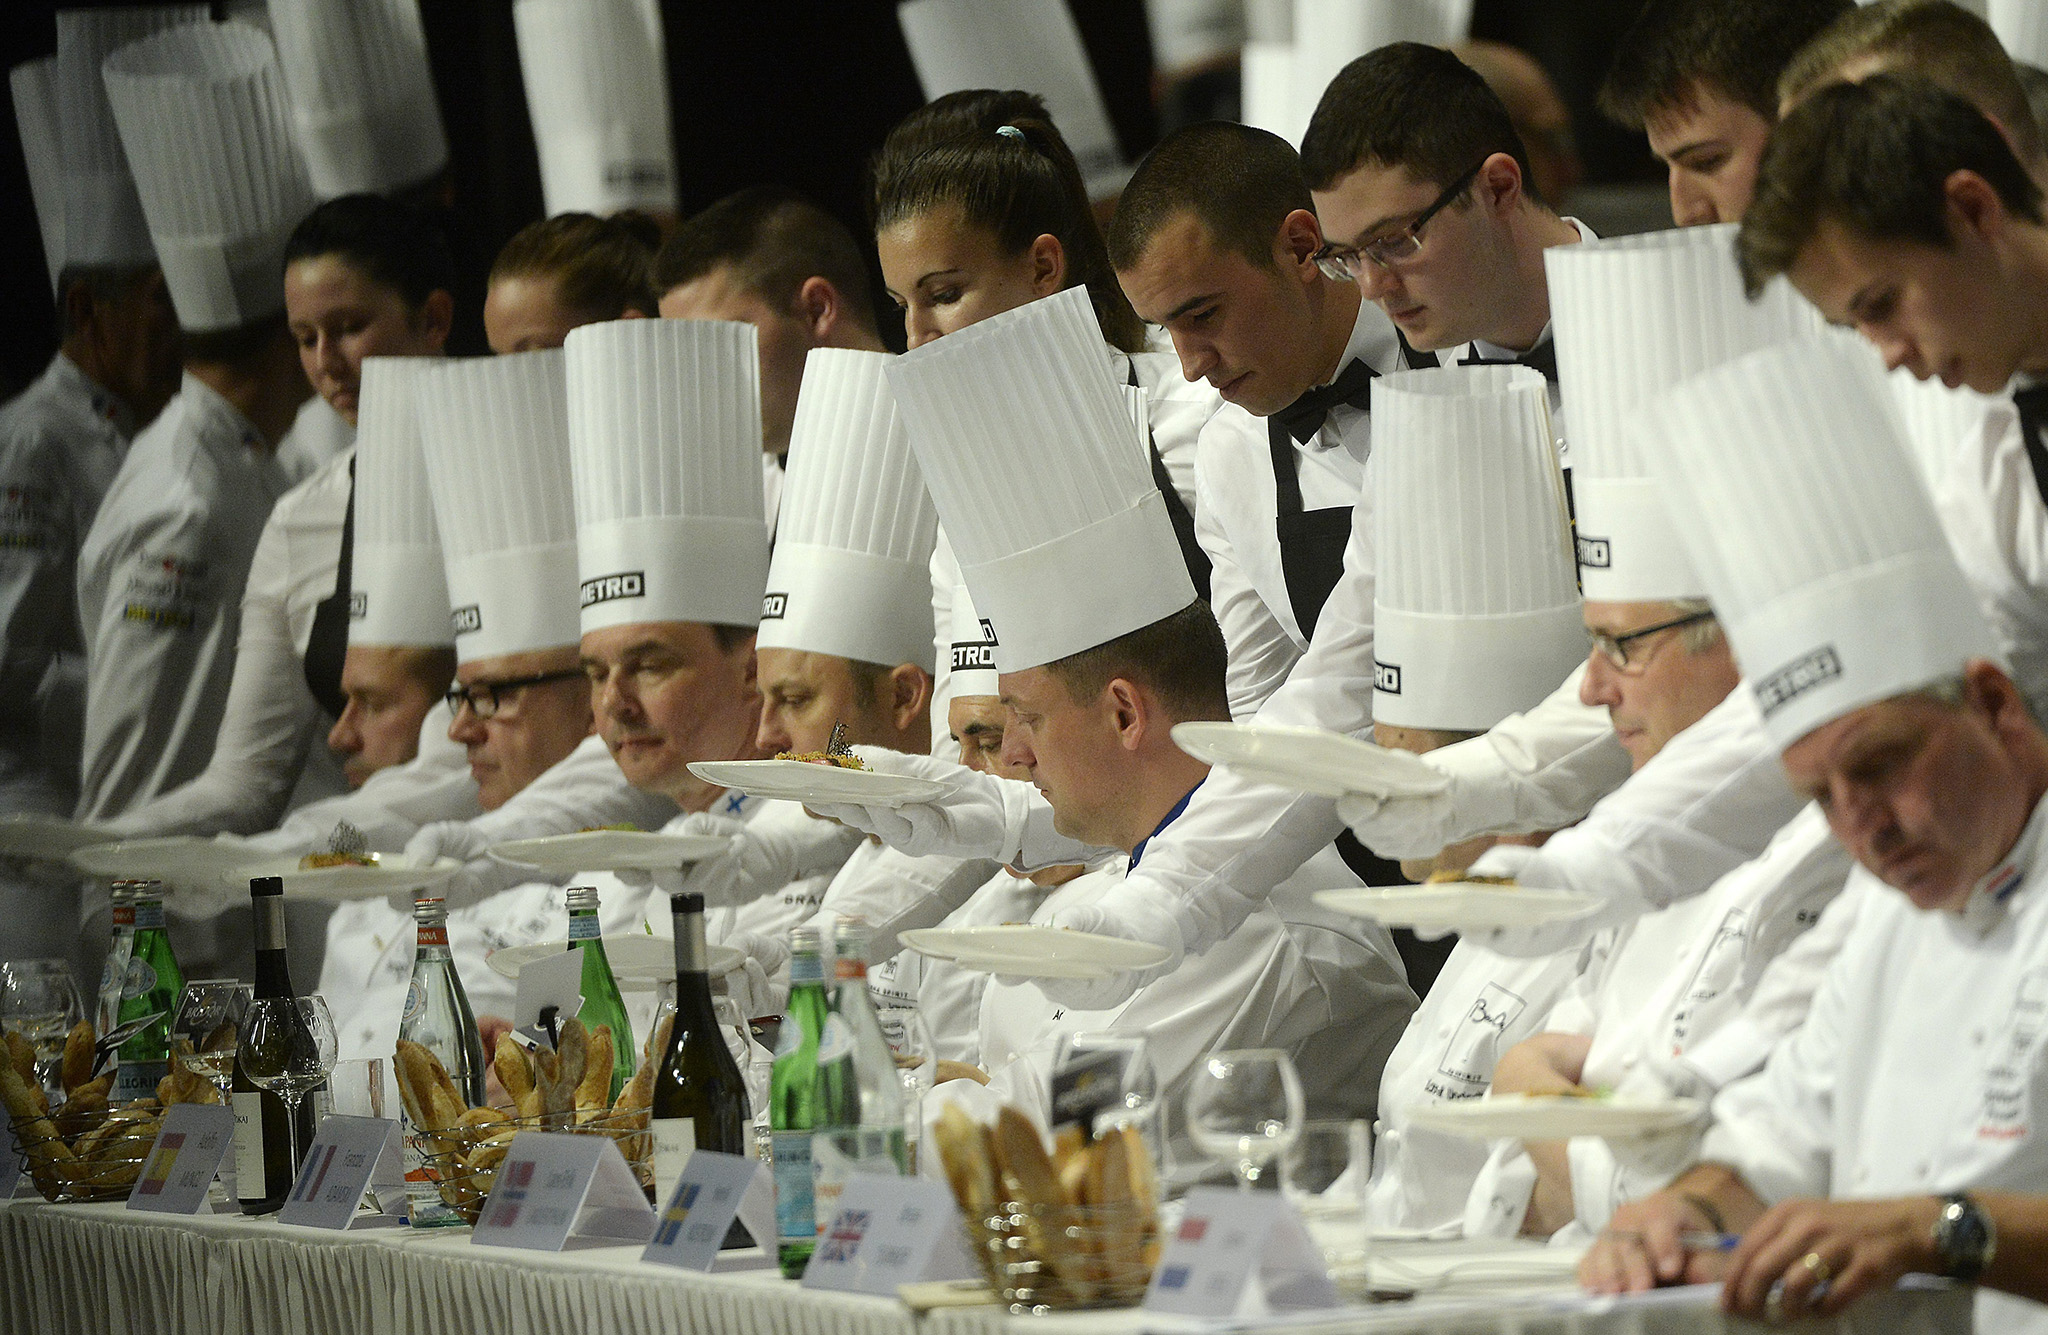 Jury members taste a dish during the European Final of Bocuse d'Or cuisine contest in Budapest, Hungary